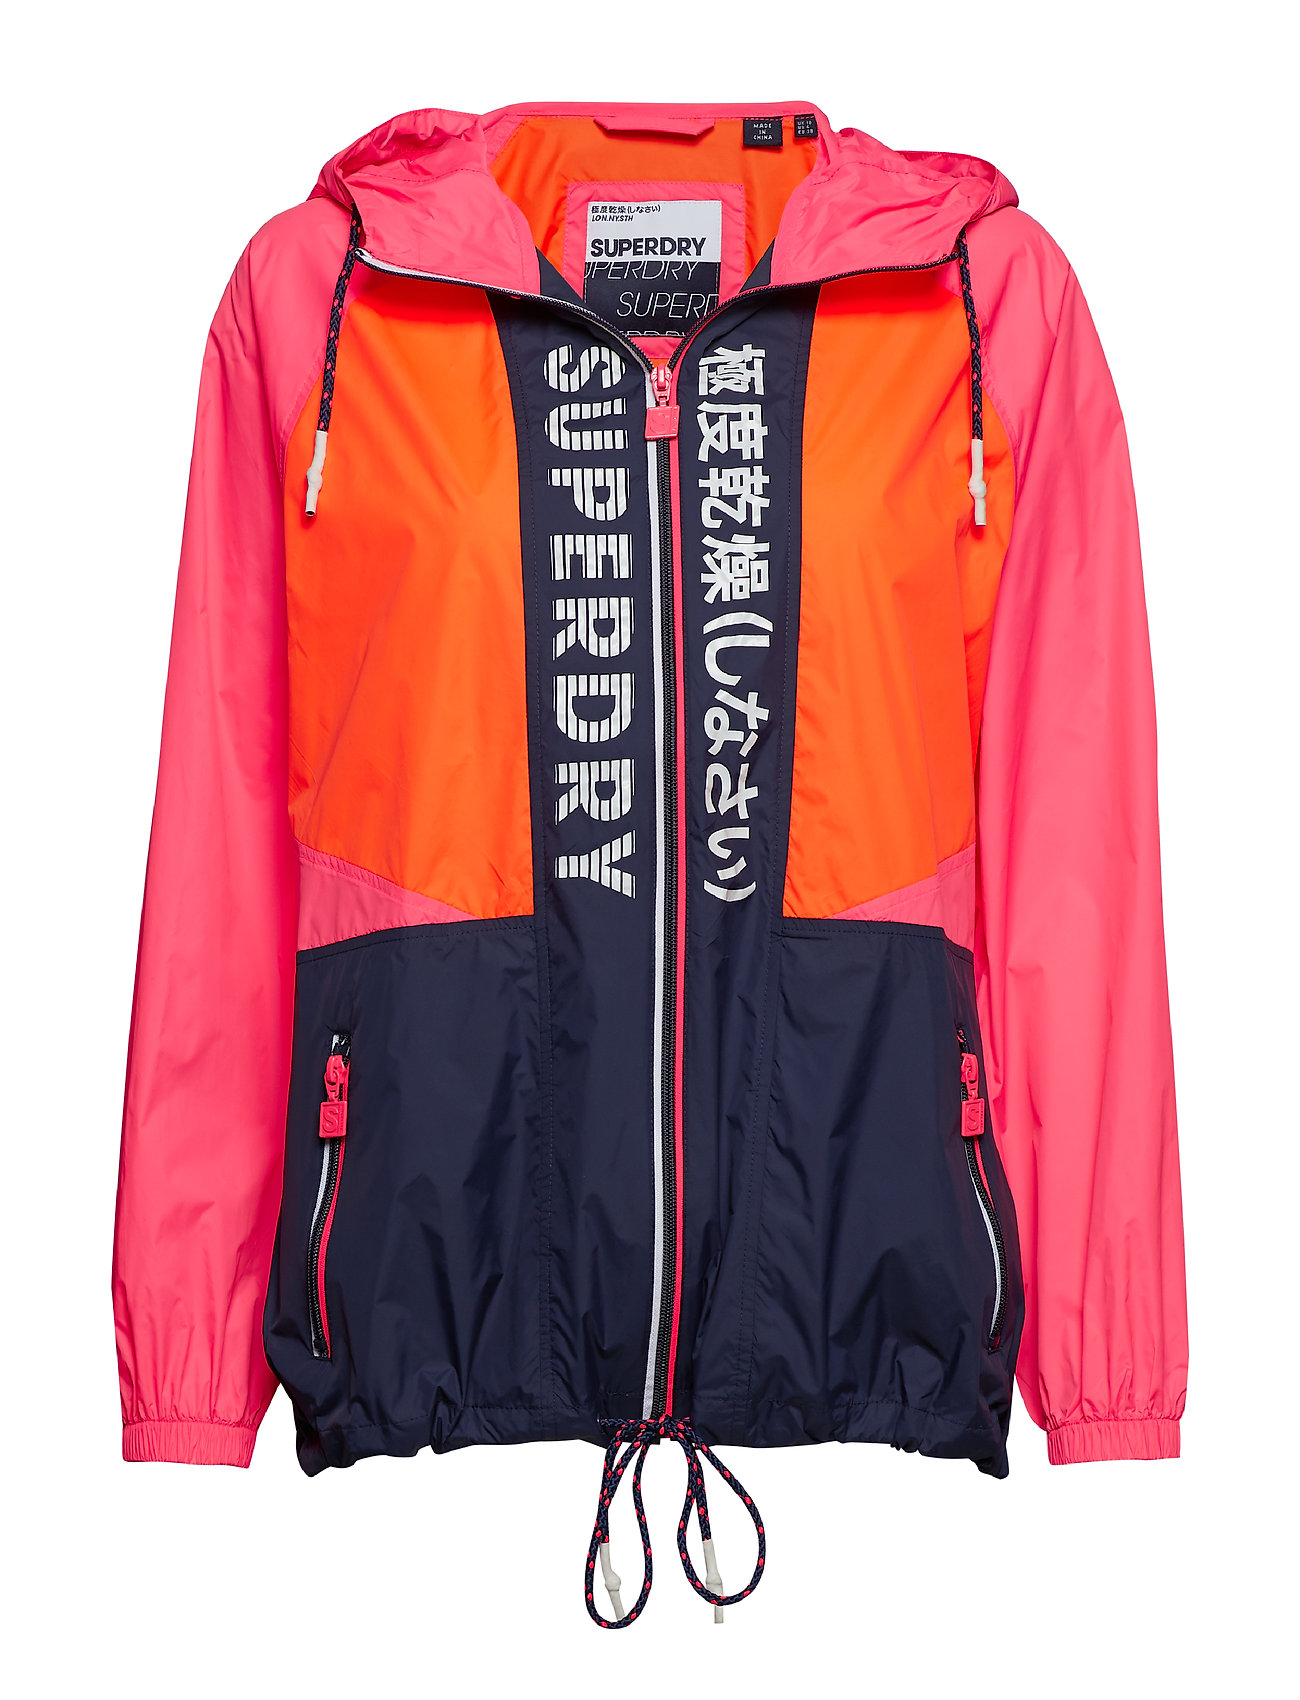 Superdry SPLICED WINDBREAKER - PINK/ORANGE/NAVY